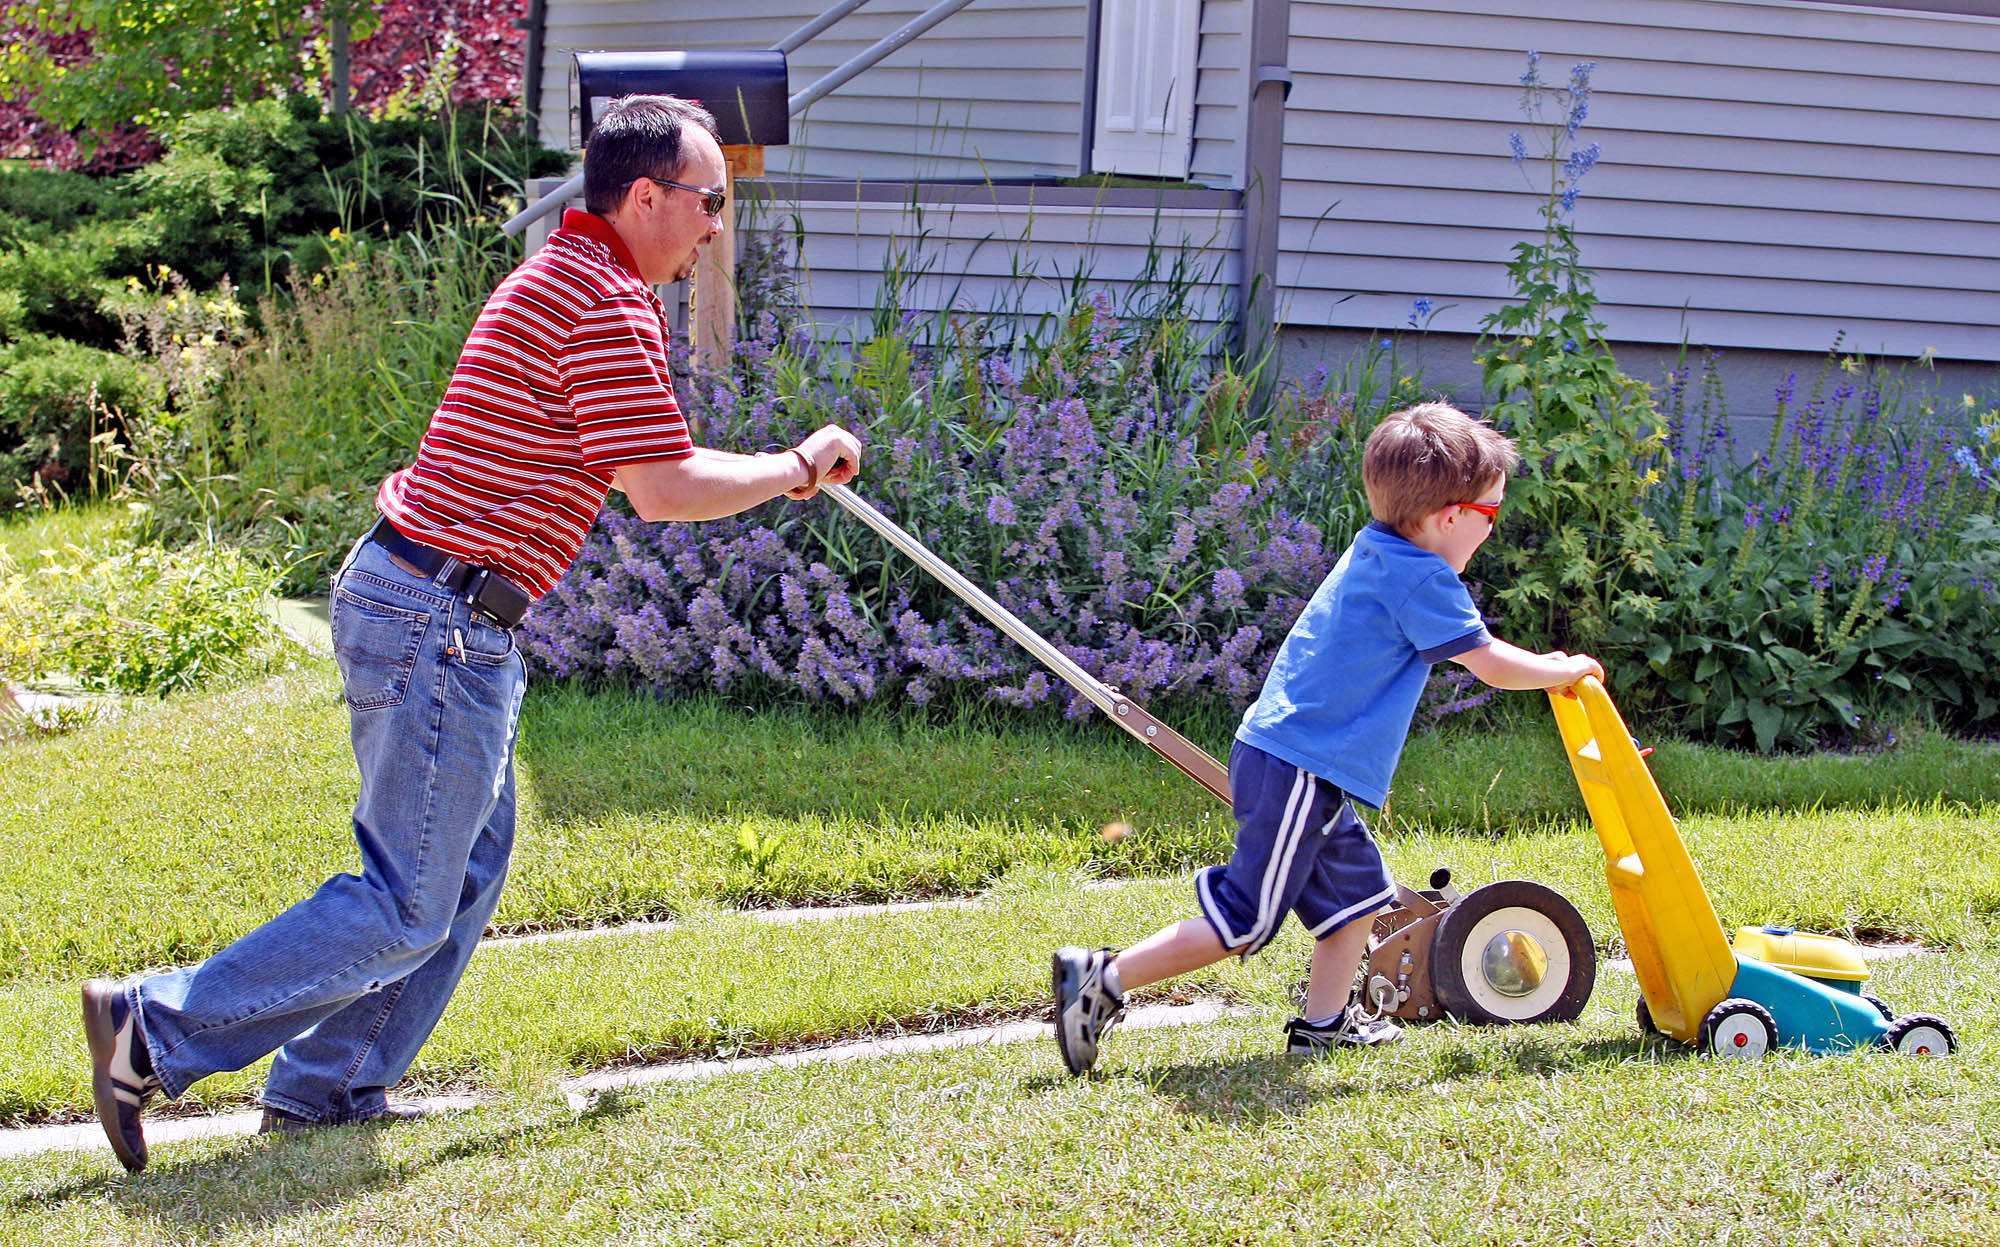 FILE -- Many American children learn about lawn care early on, Laramie, Wyoming.